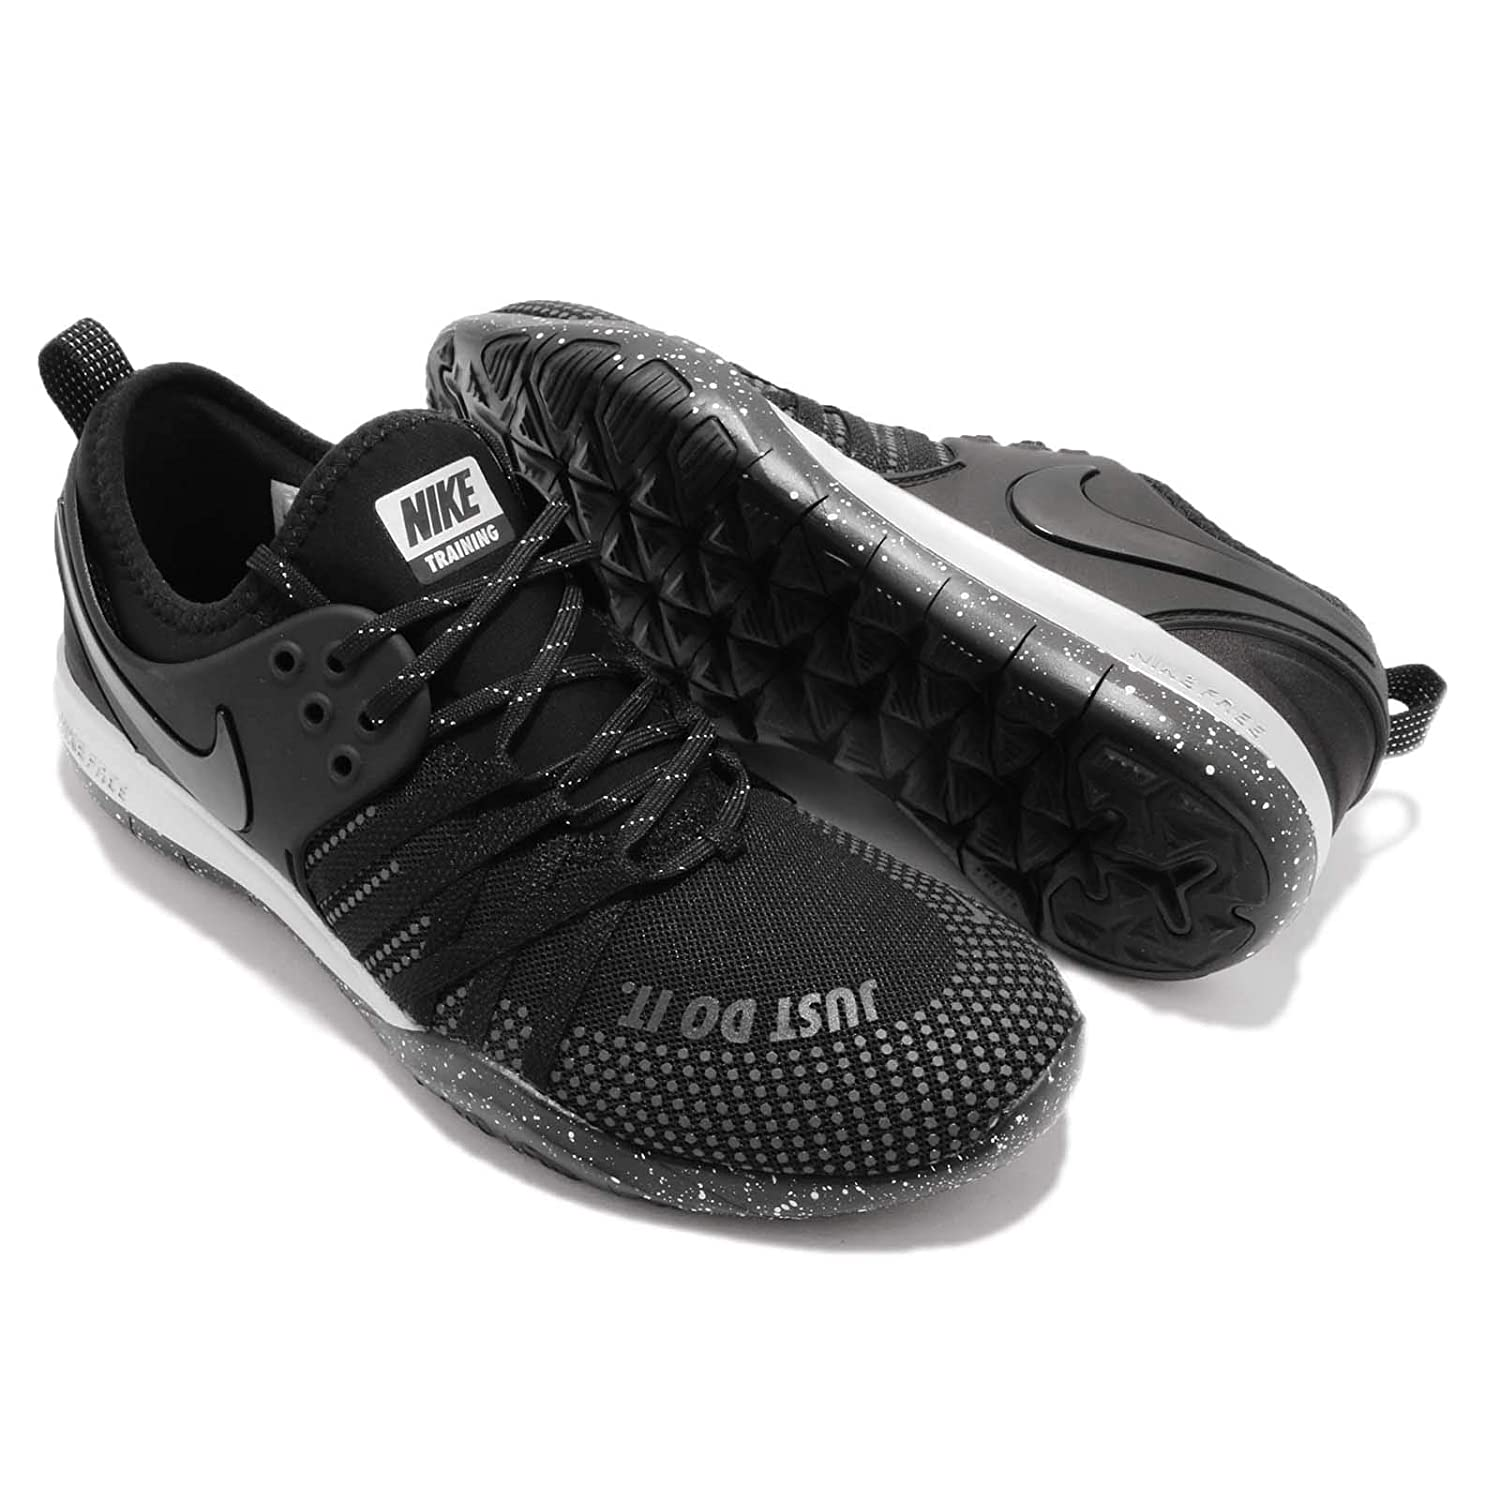 4c58d399f Nike Women's WMNS Free Tr 7 Selfie Fitness Shoes, Multicolour Black-Chrome  001, 9.5 UK: Amazon.co.uk: Shoes & Bags